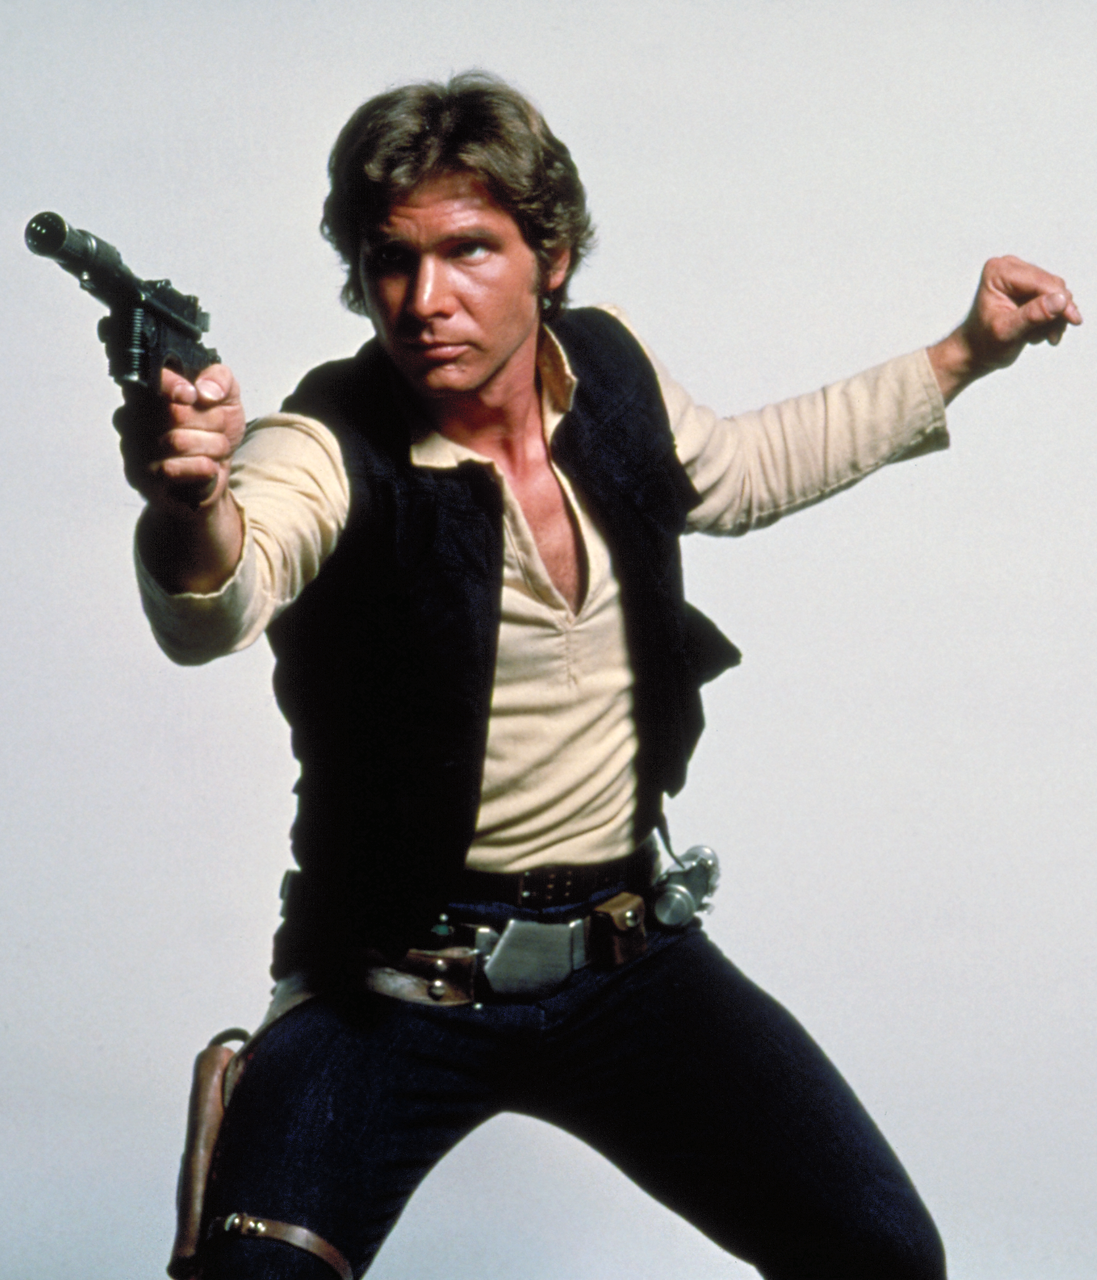 IMAGE(http://img4.wikia.nocookie.net/__cb20131104113452/starwars/images/2/27/HanSoloPromo-MOSW.png)